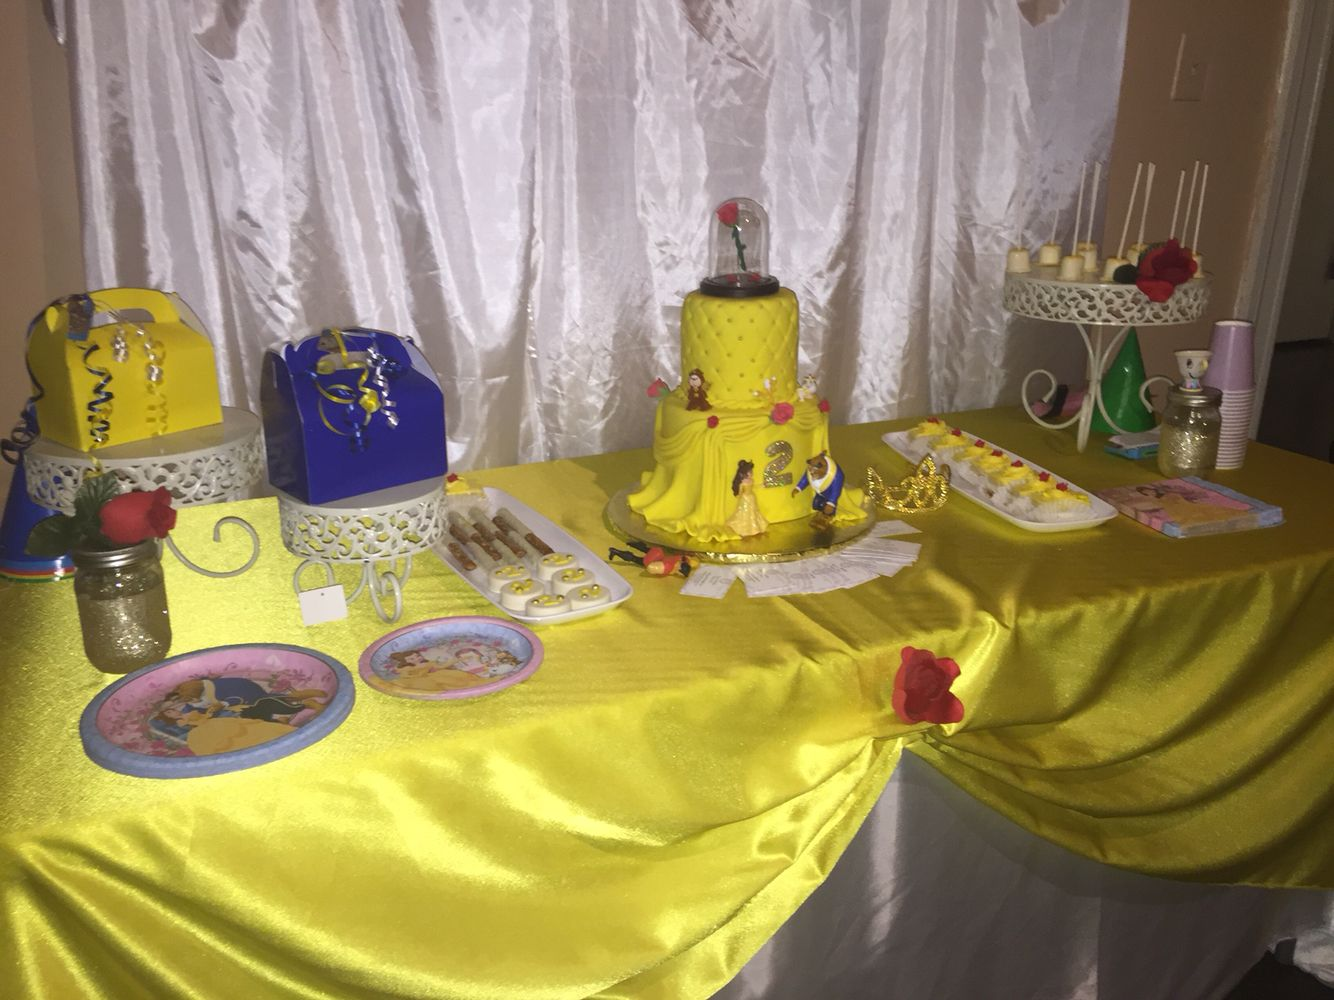 Cake table beauty and the beast | Cake table decorations ...